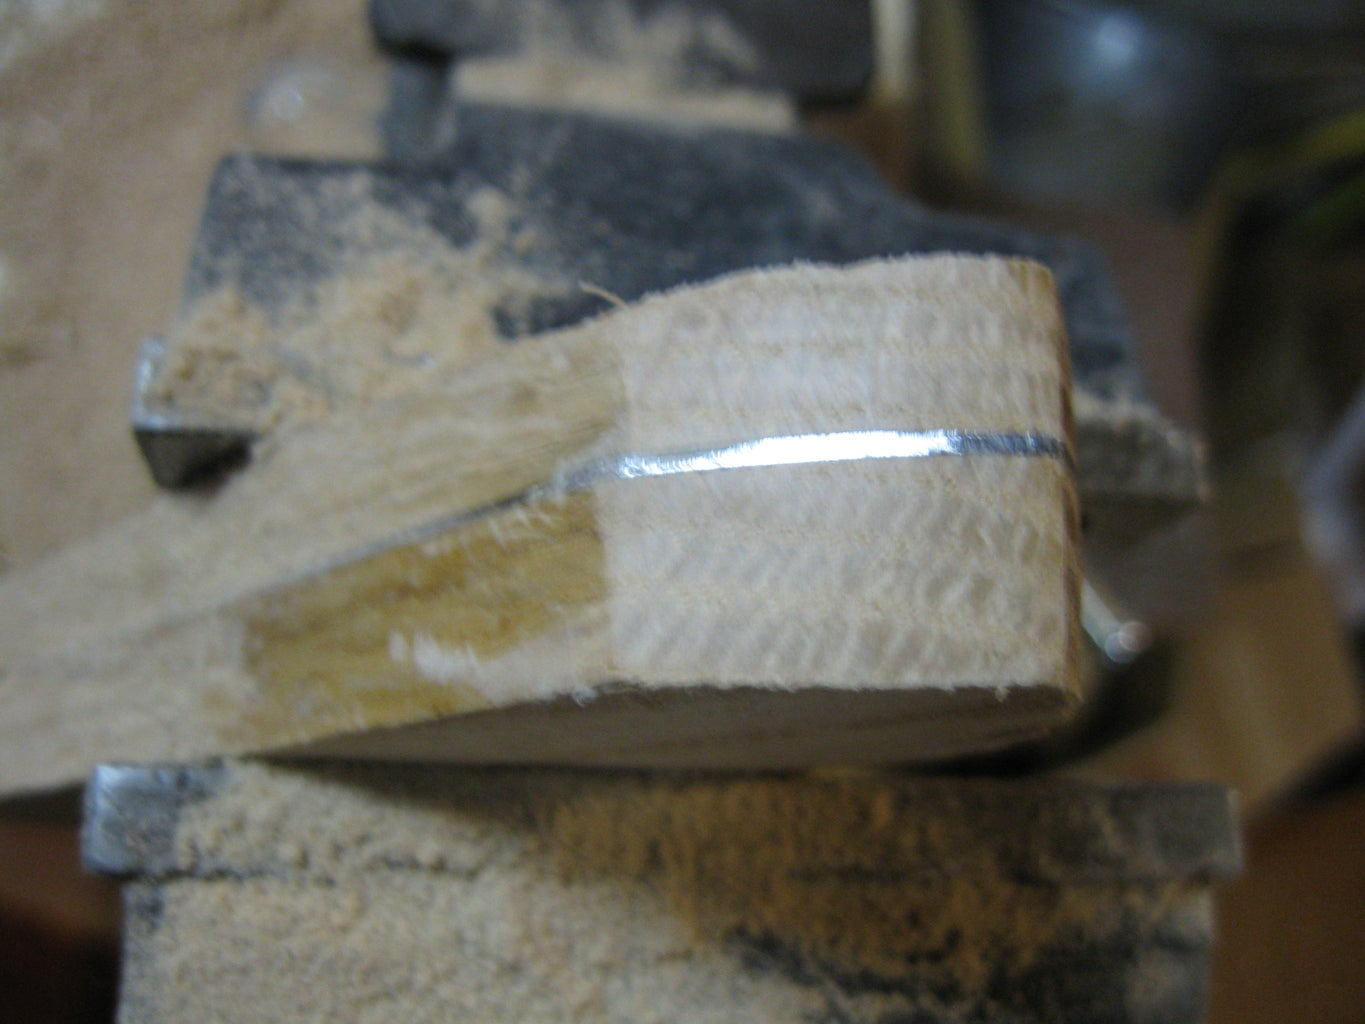 Making the Handle: Rough Shaping